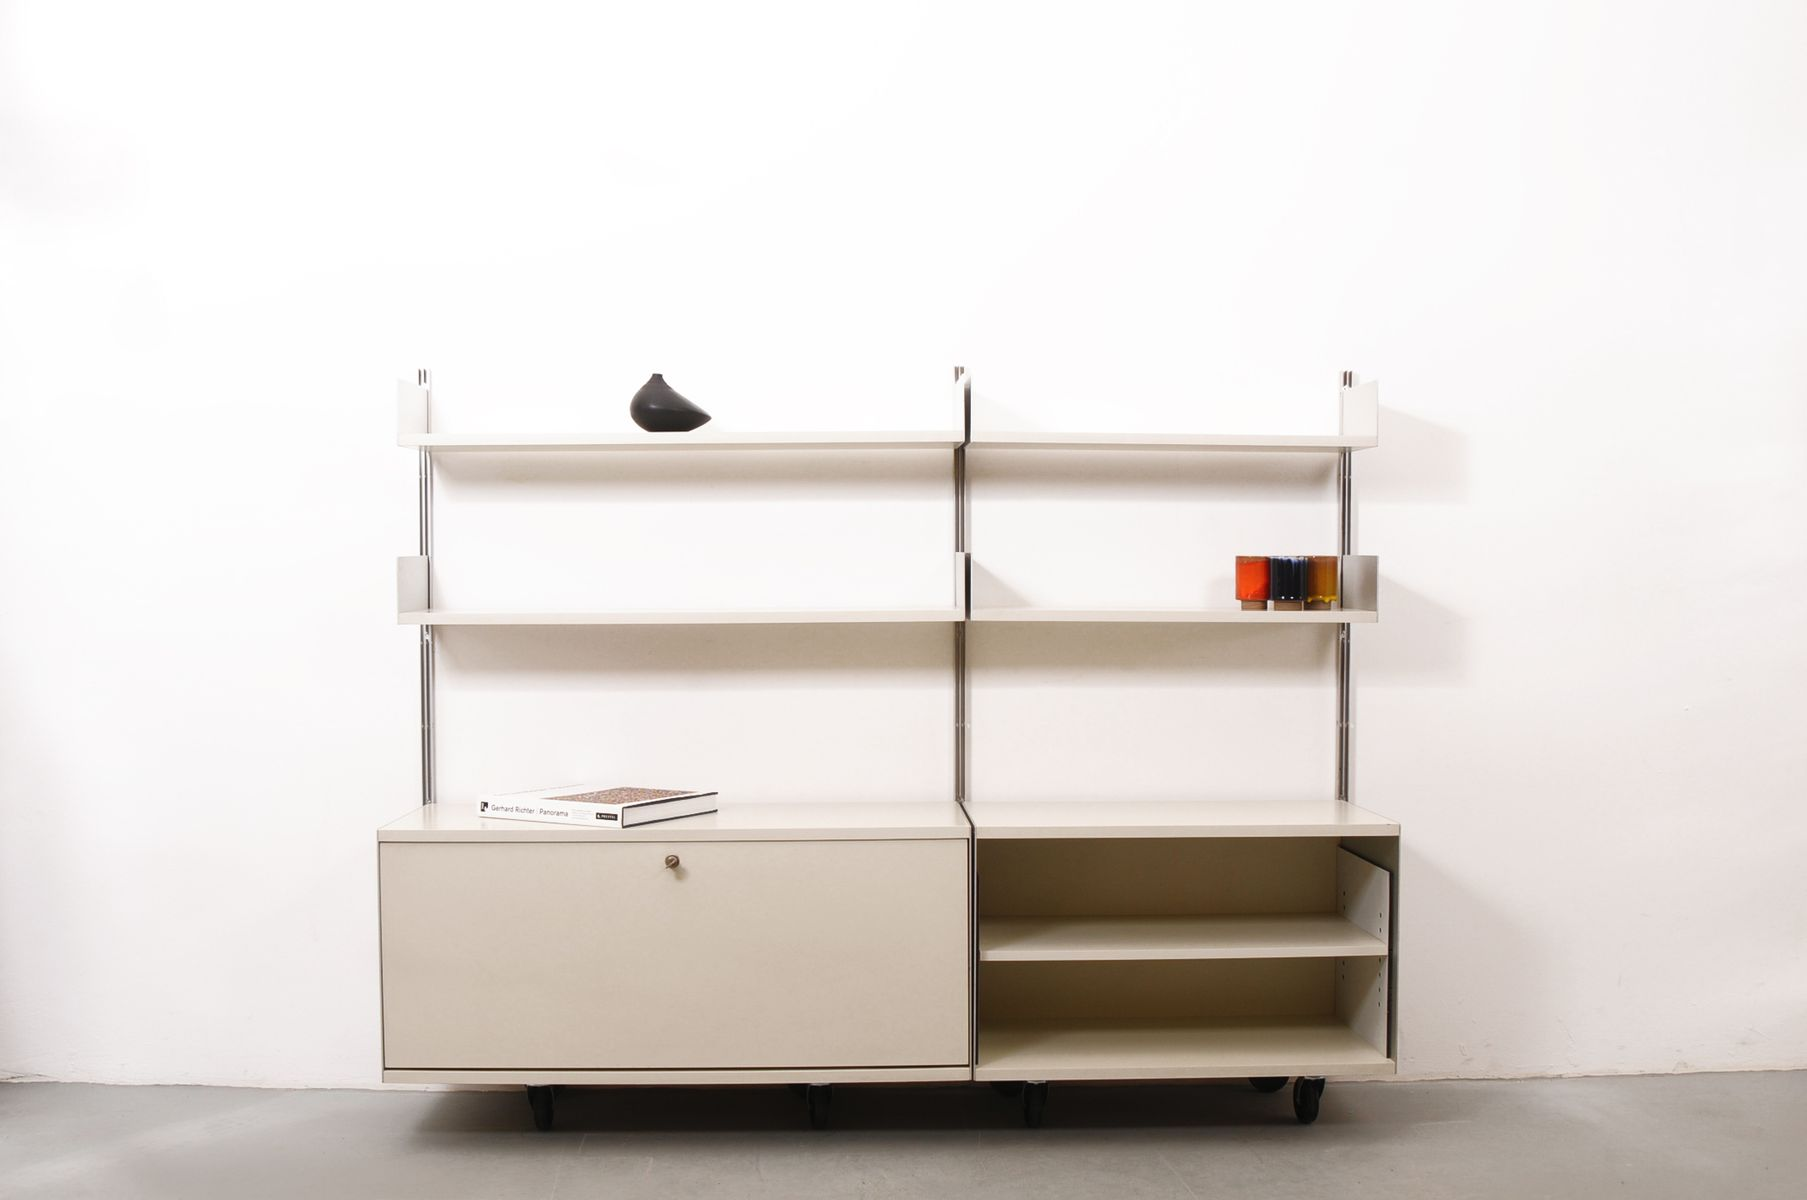 regalsystem 606 von dieter rams f r vitsoe bei pamono kaufen. Black Bedroom Furniture Sets. Home Design Ideas